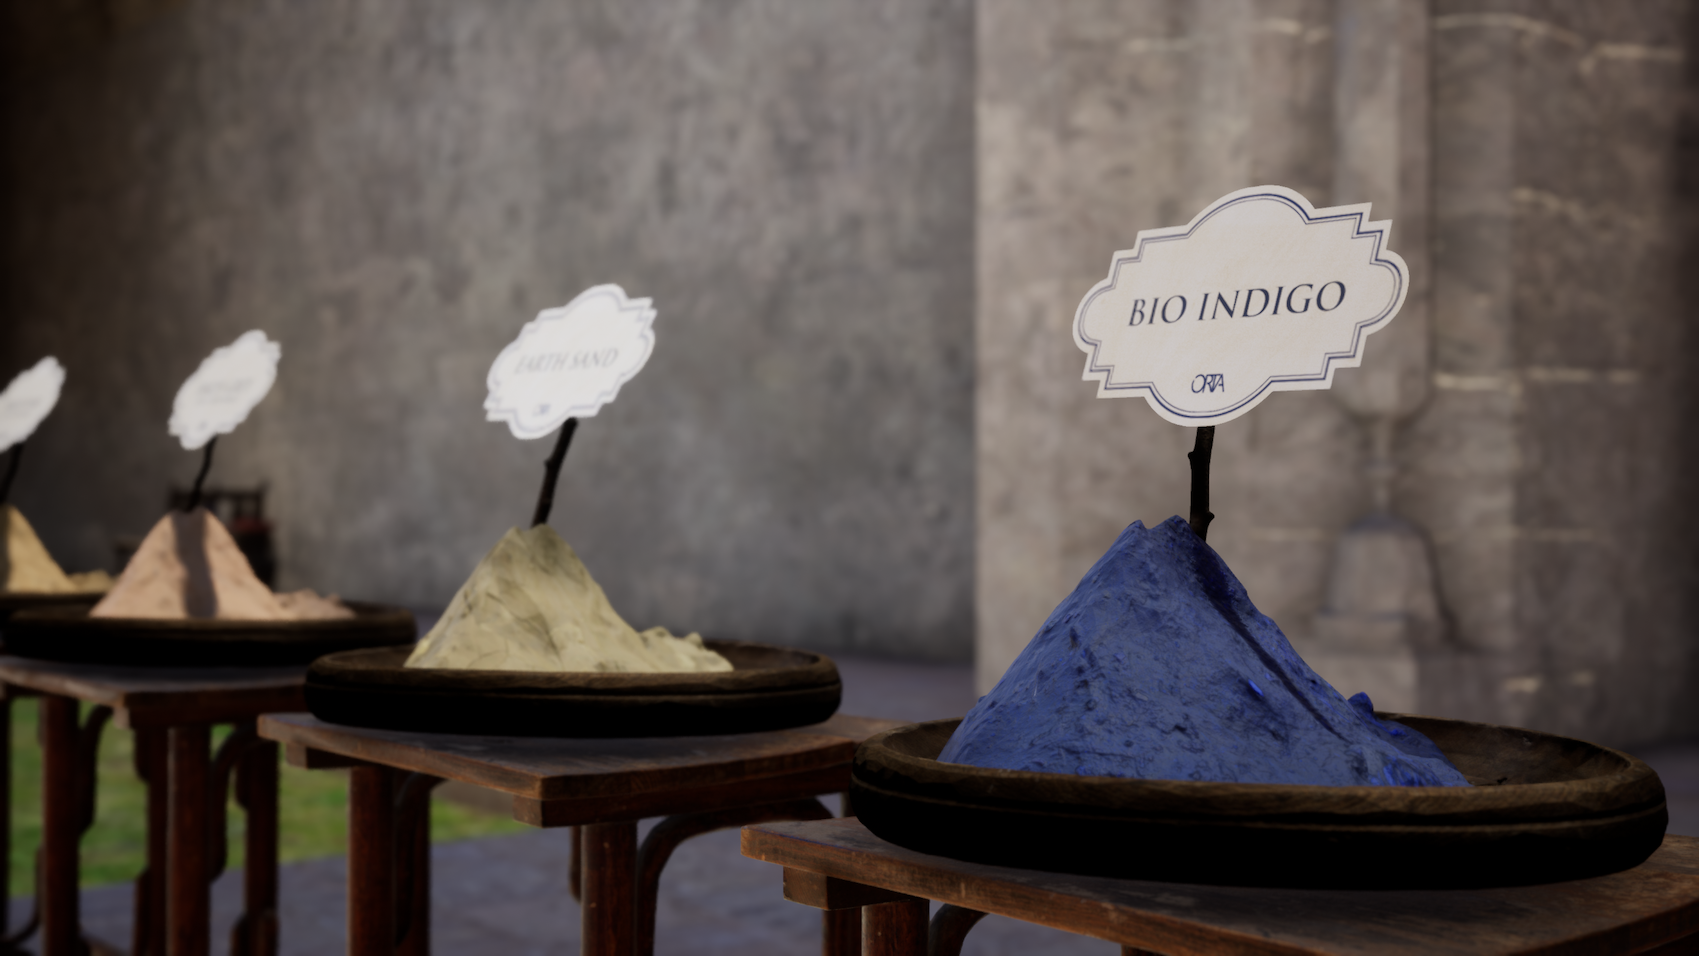 3D samples of ORTA's various dyes, such as Bio Indigo and Earth Sand